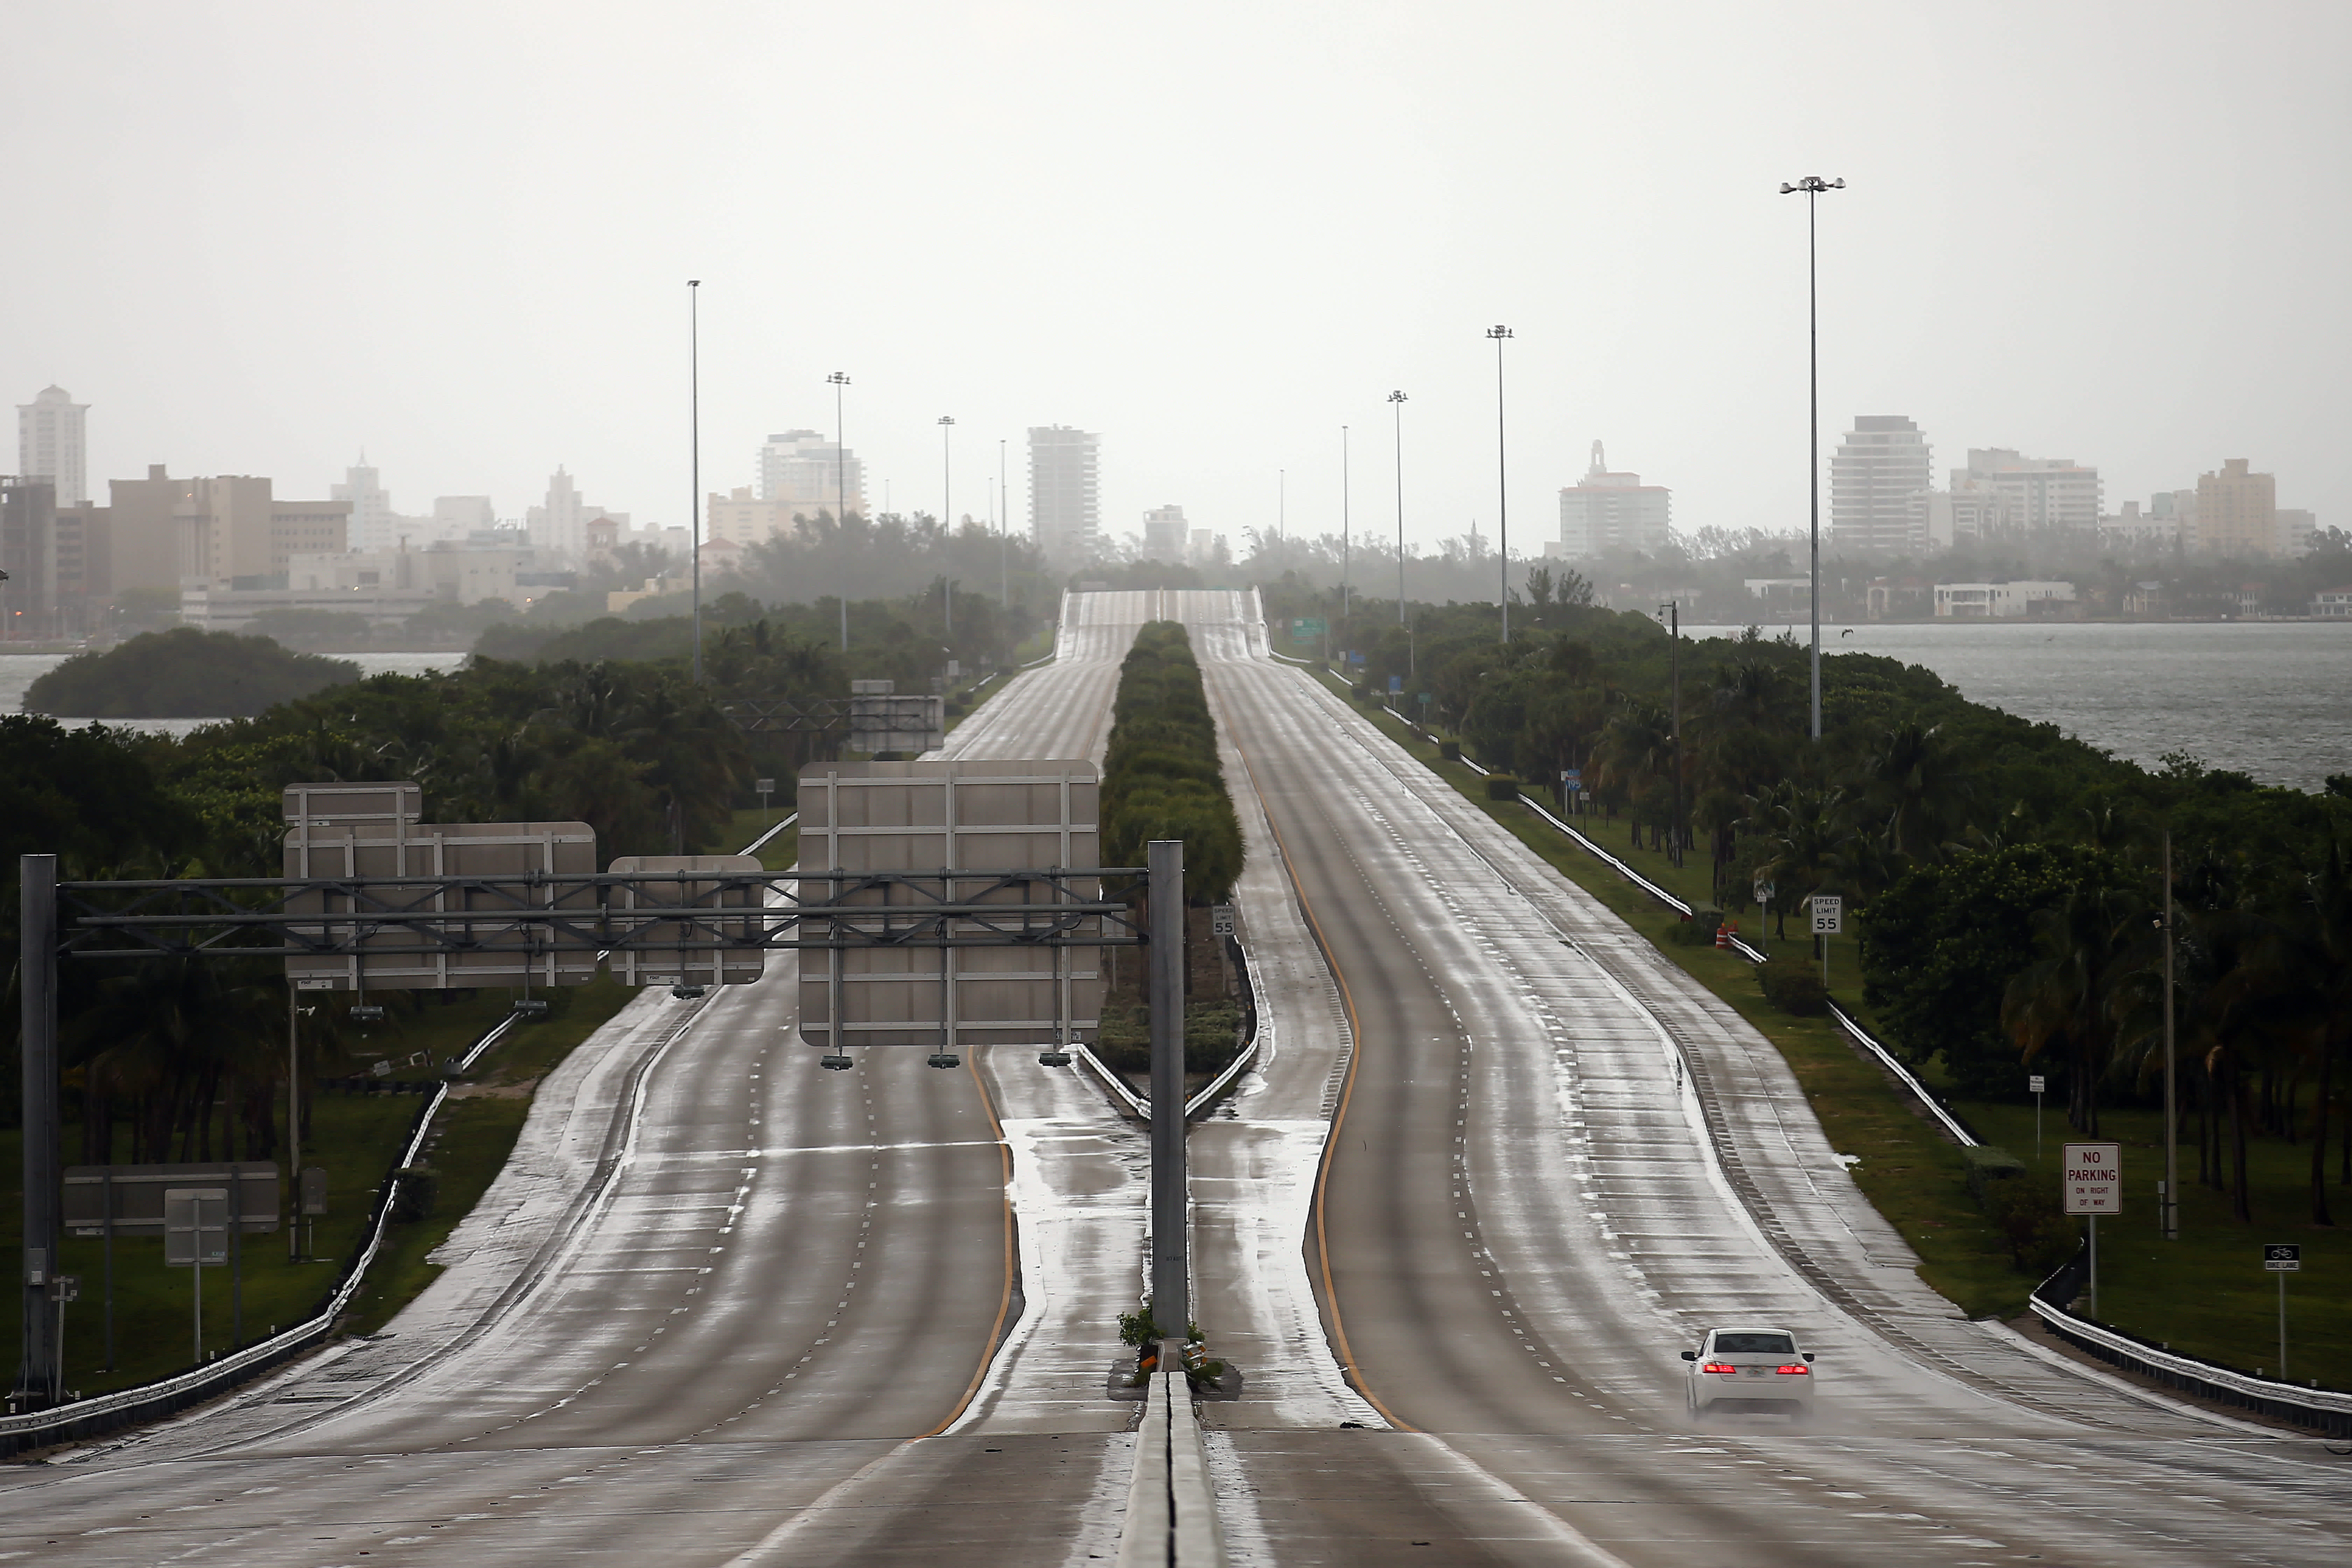 A car drives along an empty highway in Miami before the arrival of Hurricane Irma in South Florida (CARLOS BARRIA / REUTERS)